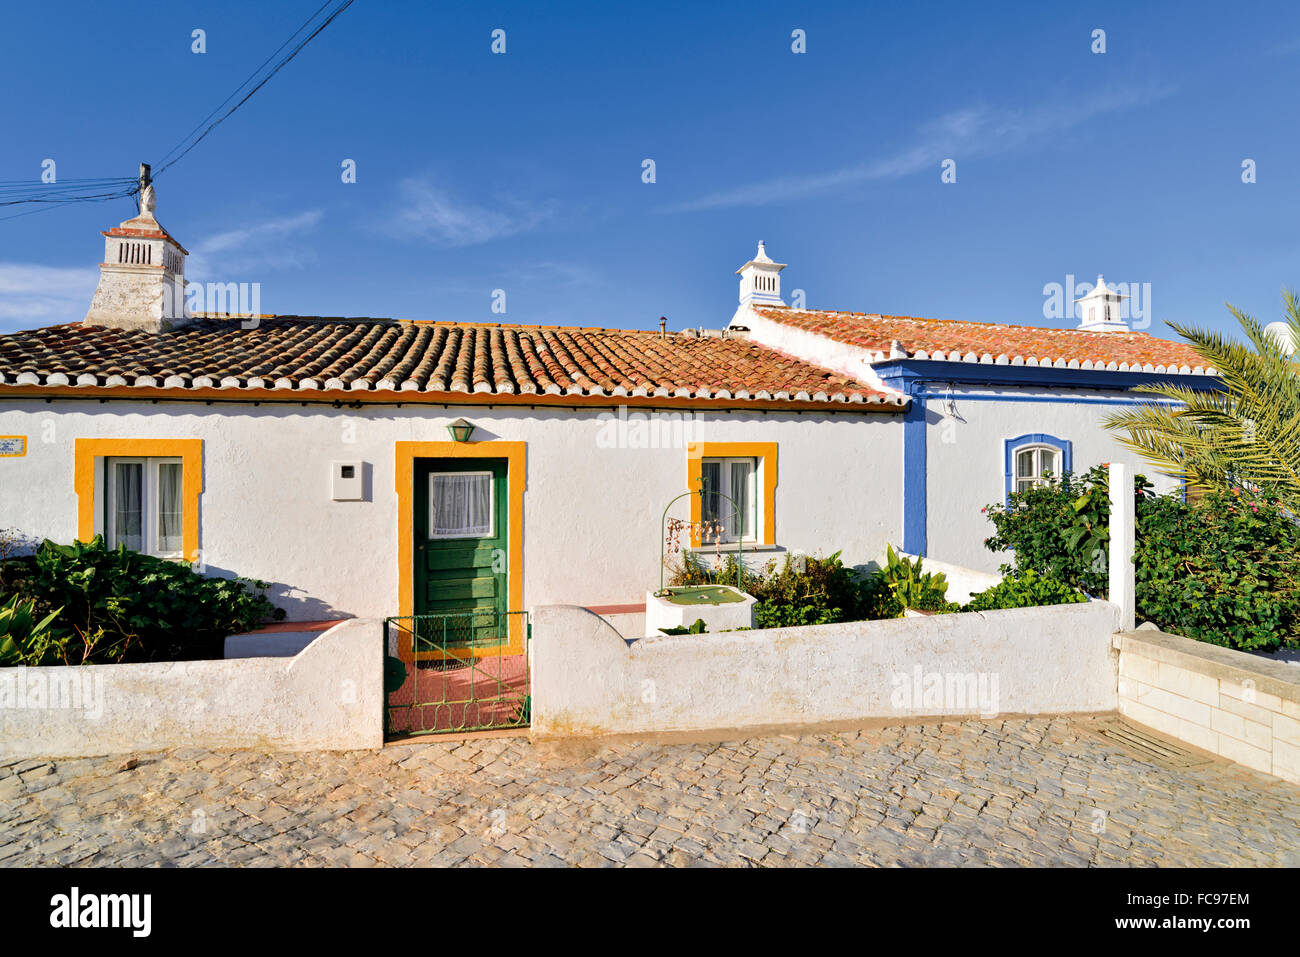 Le Portugal, l'Algarve : architecture traditionnelle de l'algarve avec des maisons blanches et colorées Photo Stock